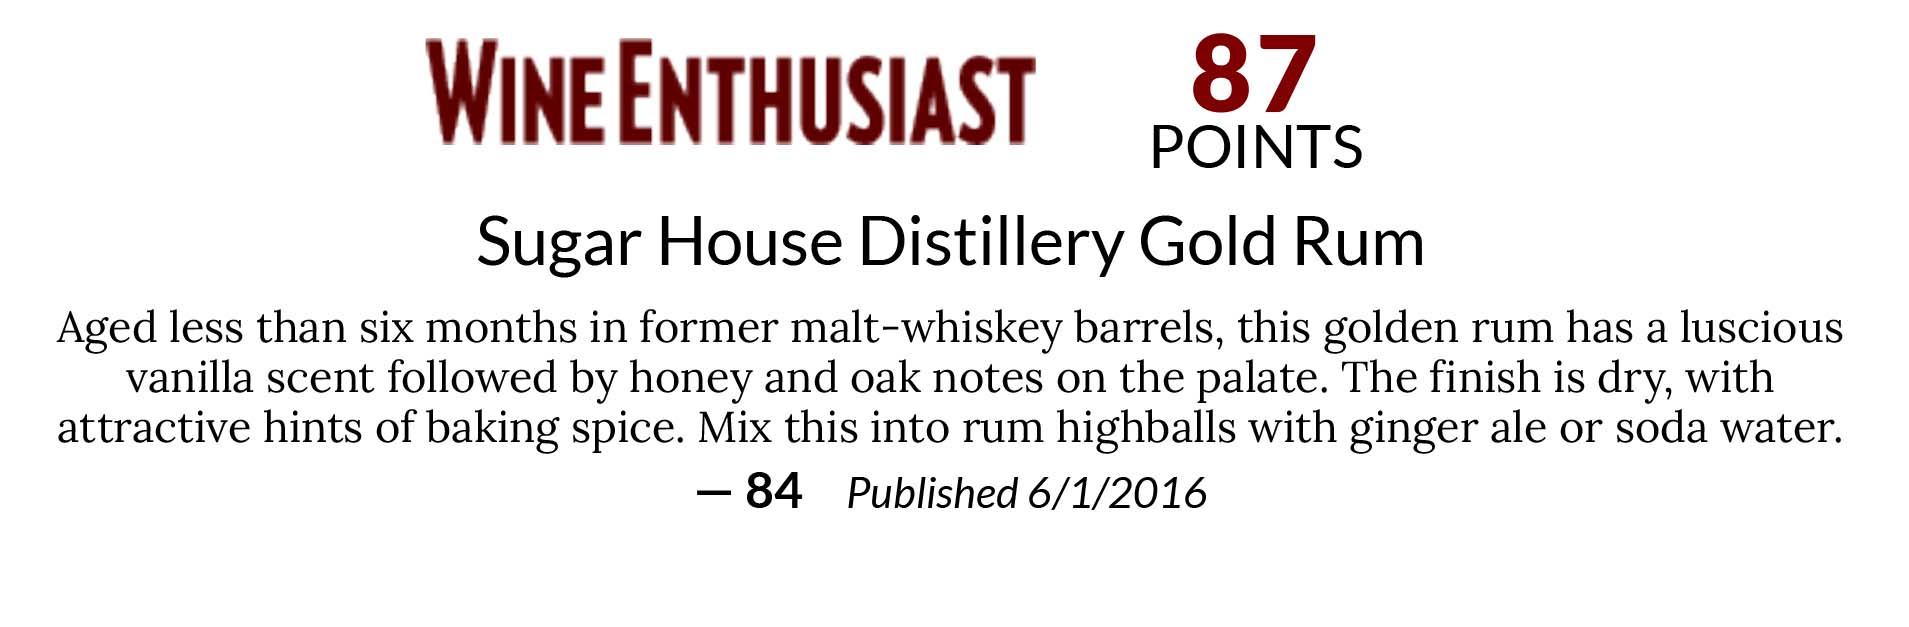 Sugar House Distillery Gold Rum